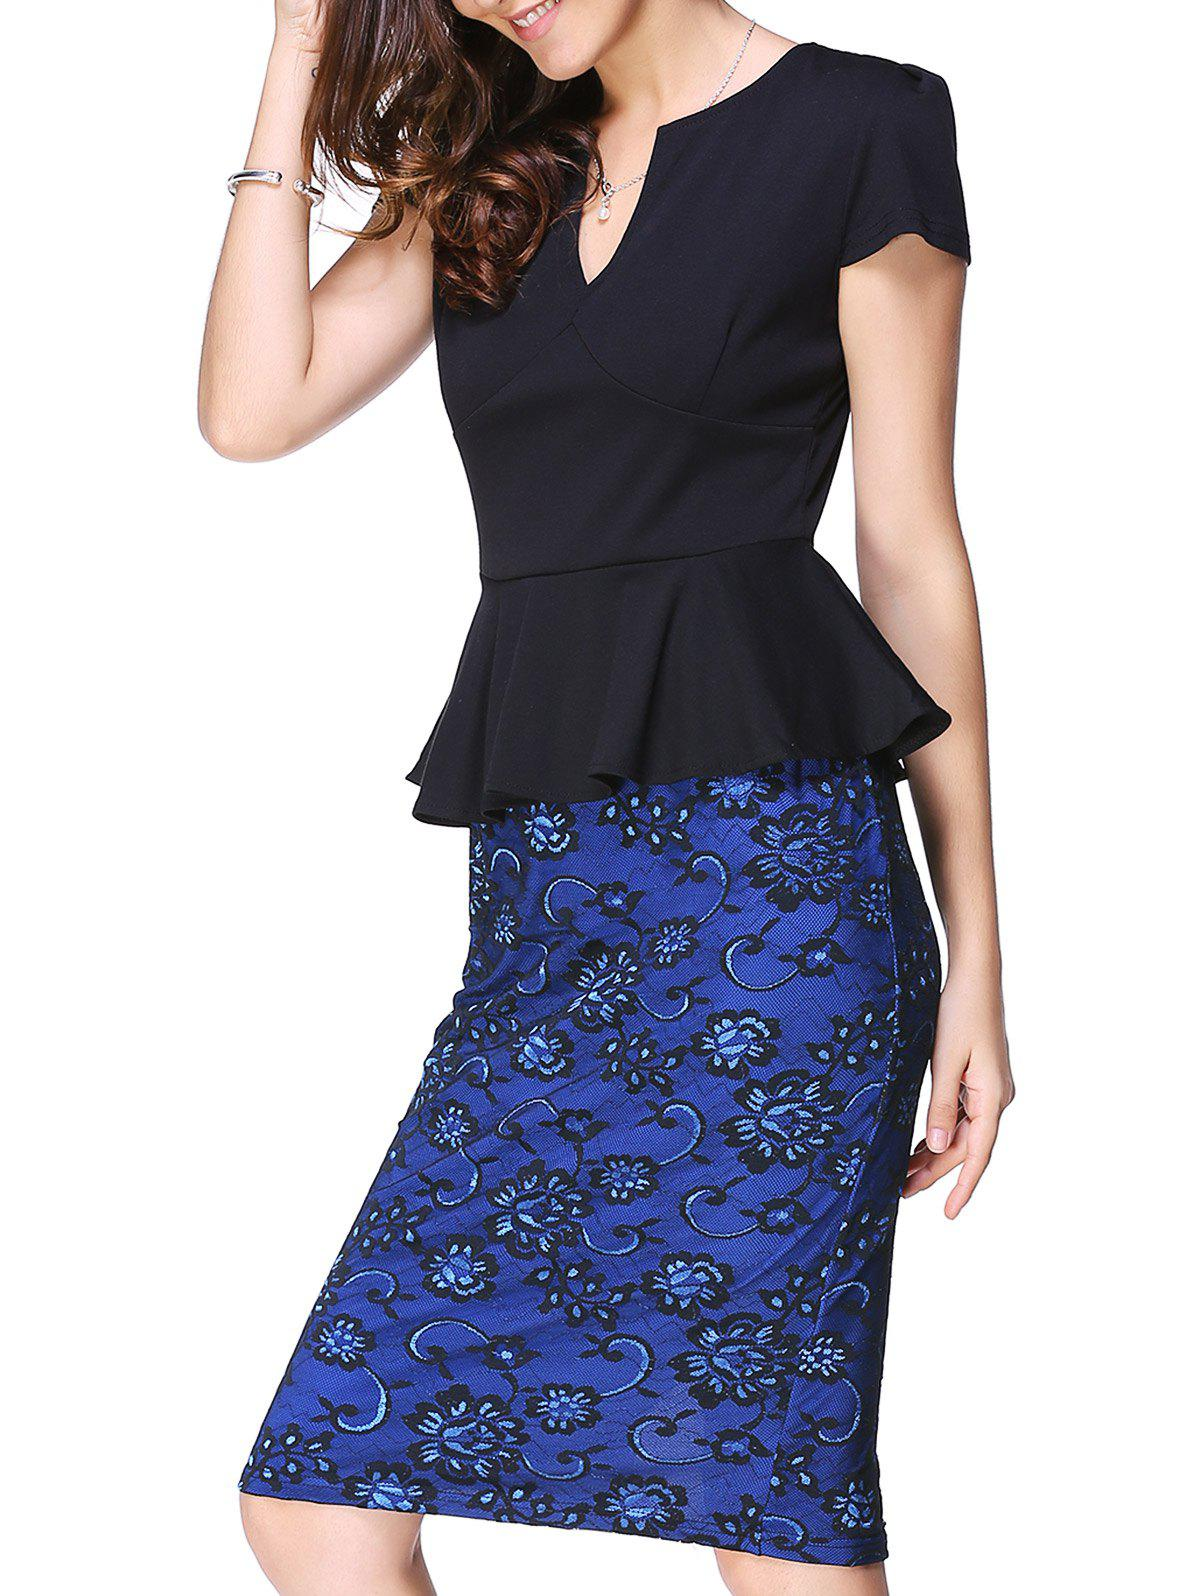 Graceful Womens Plunging Neck Short Sleeve Flounce Waist Bodycon DressWomen<br><br><br>Size: L<br>Color: BLUE AND BLACK